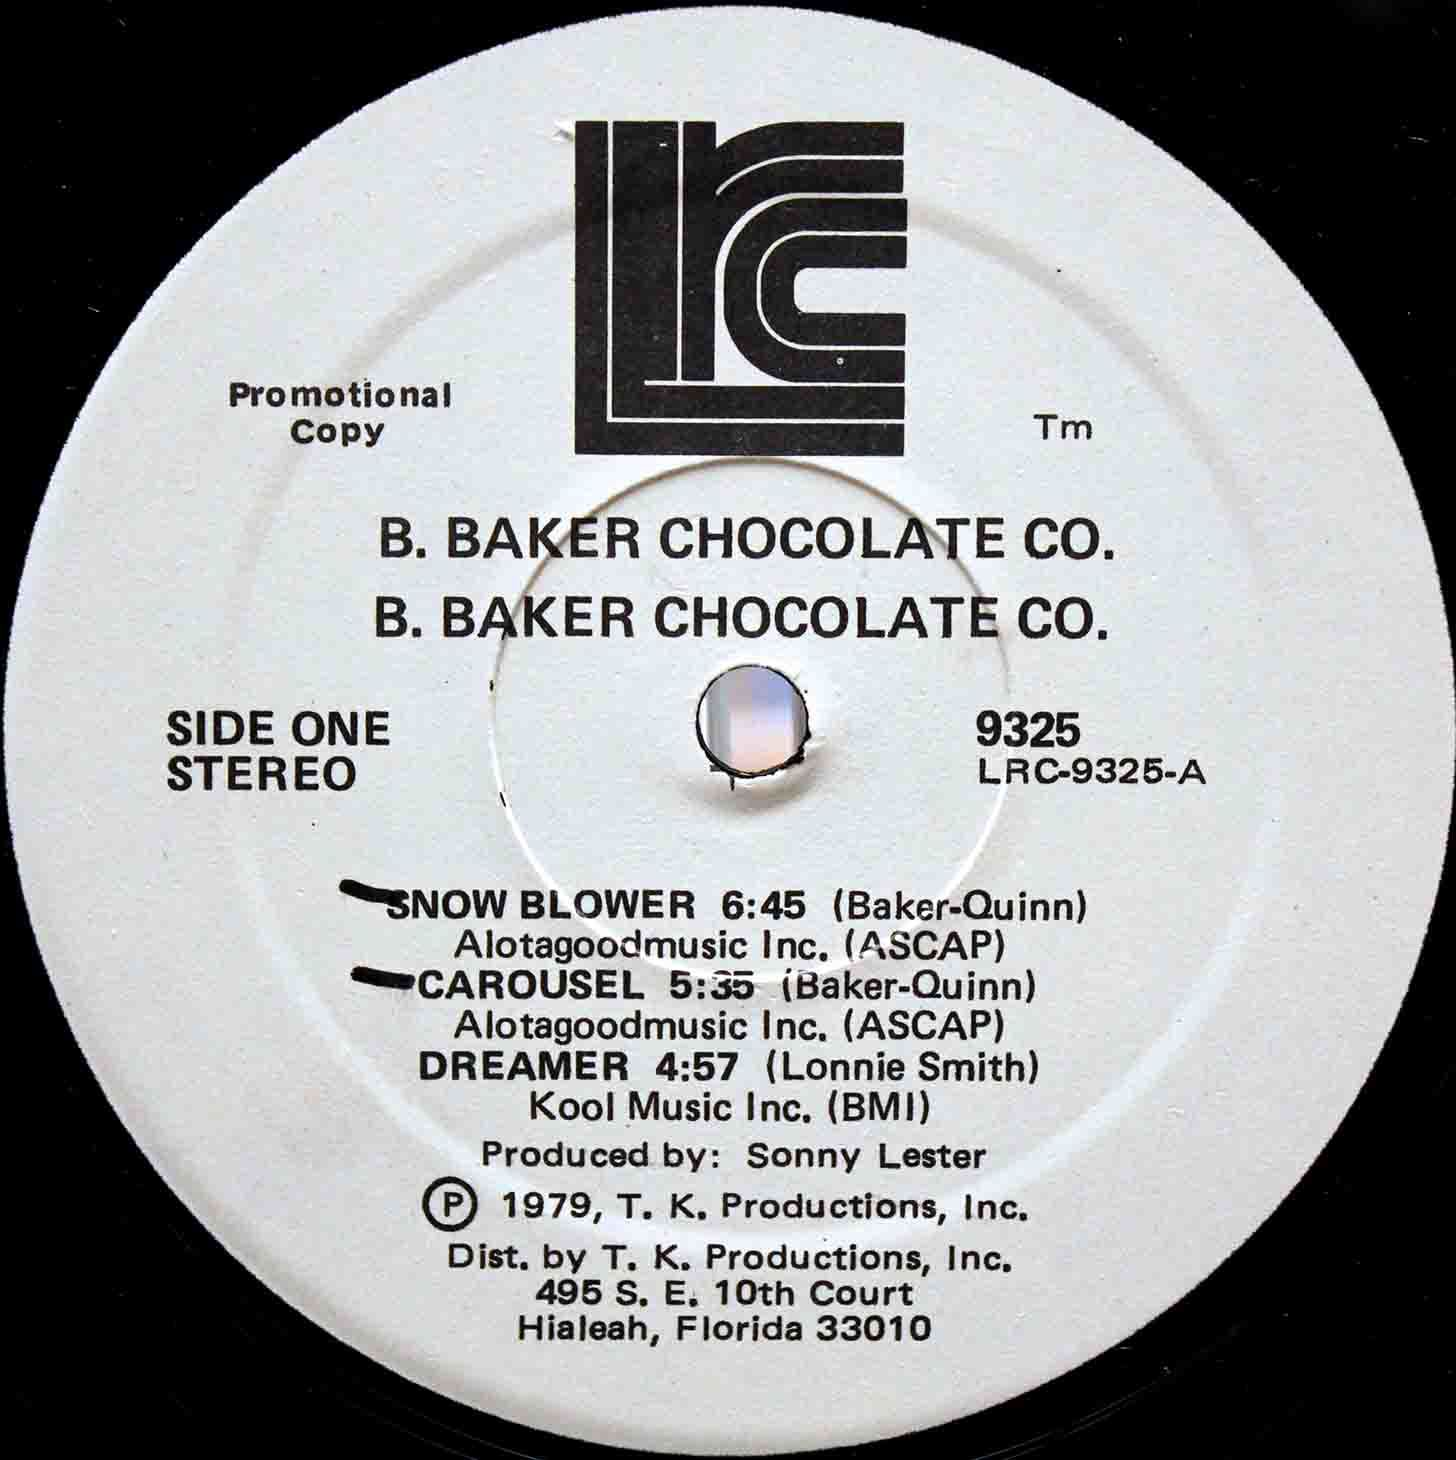 B Baker Chocolate Co 03